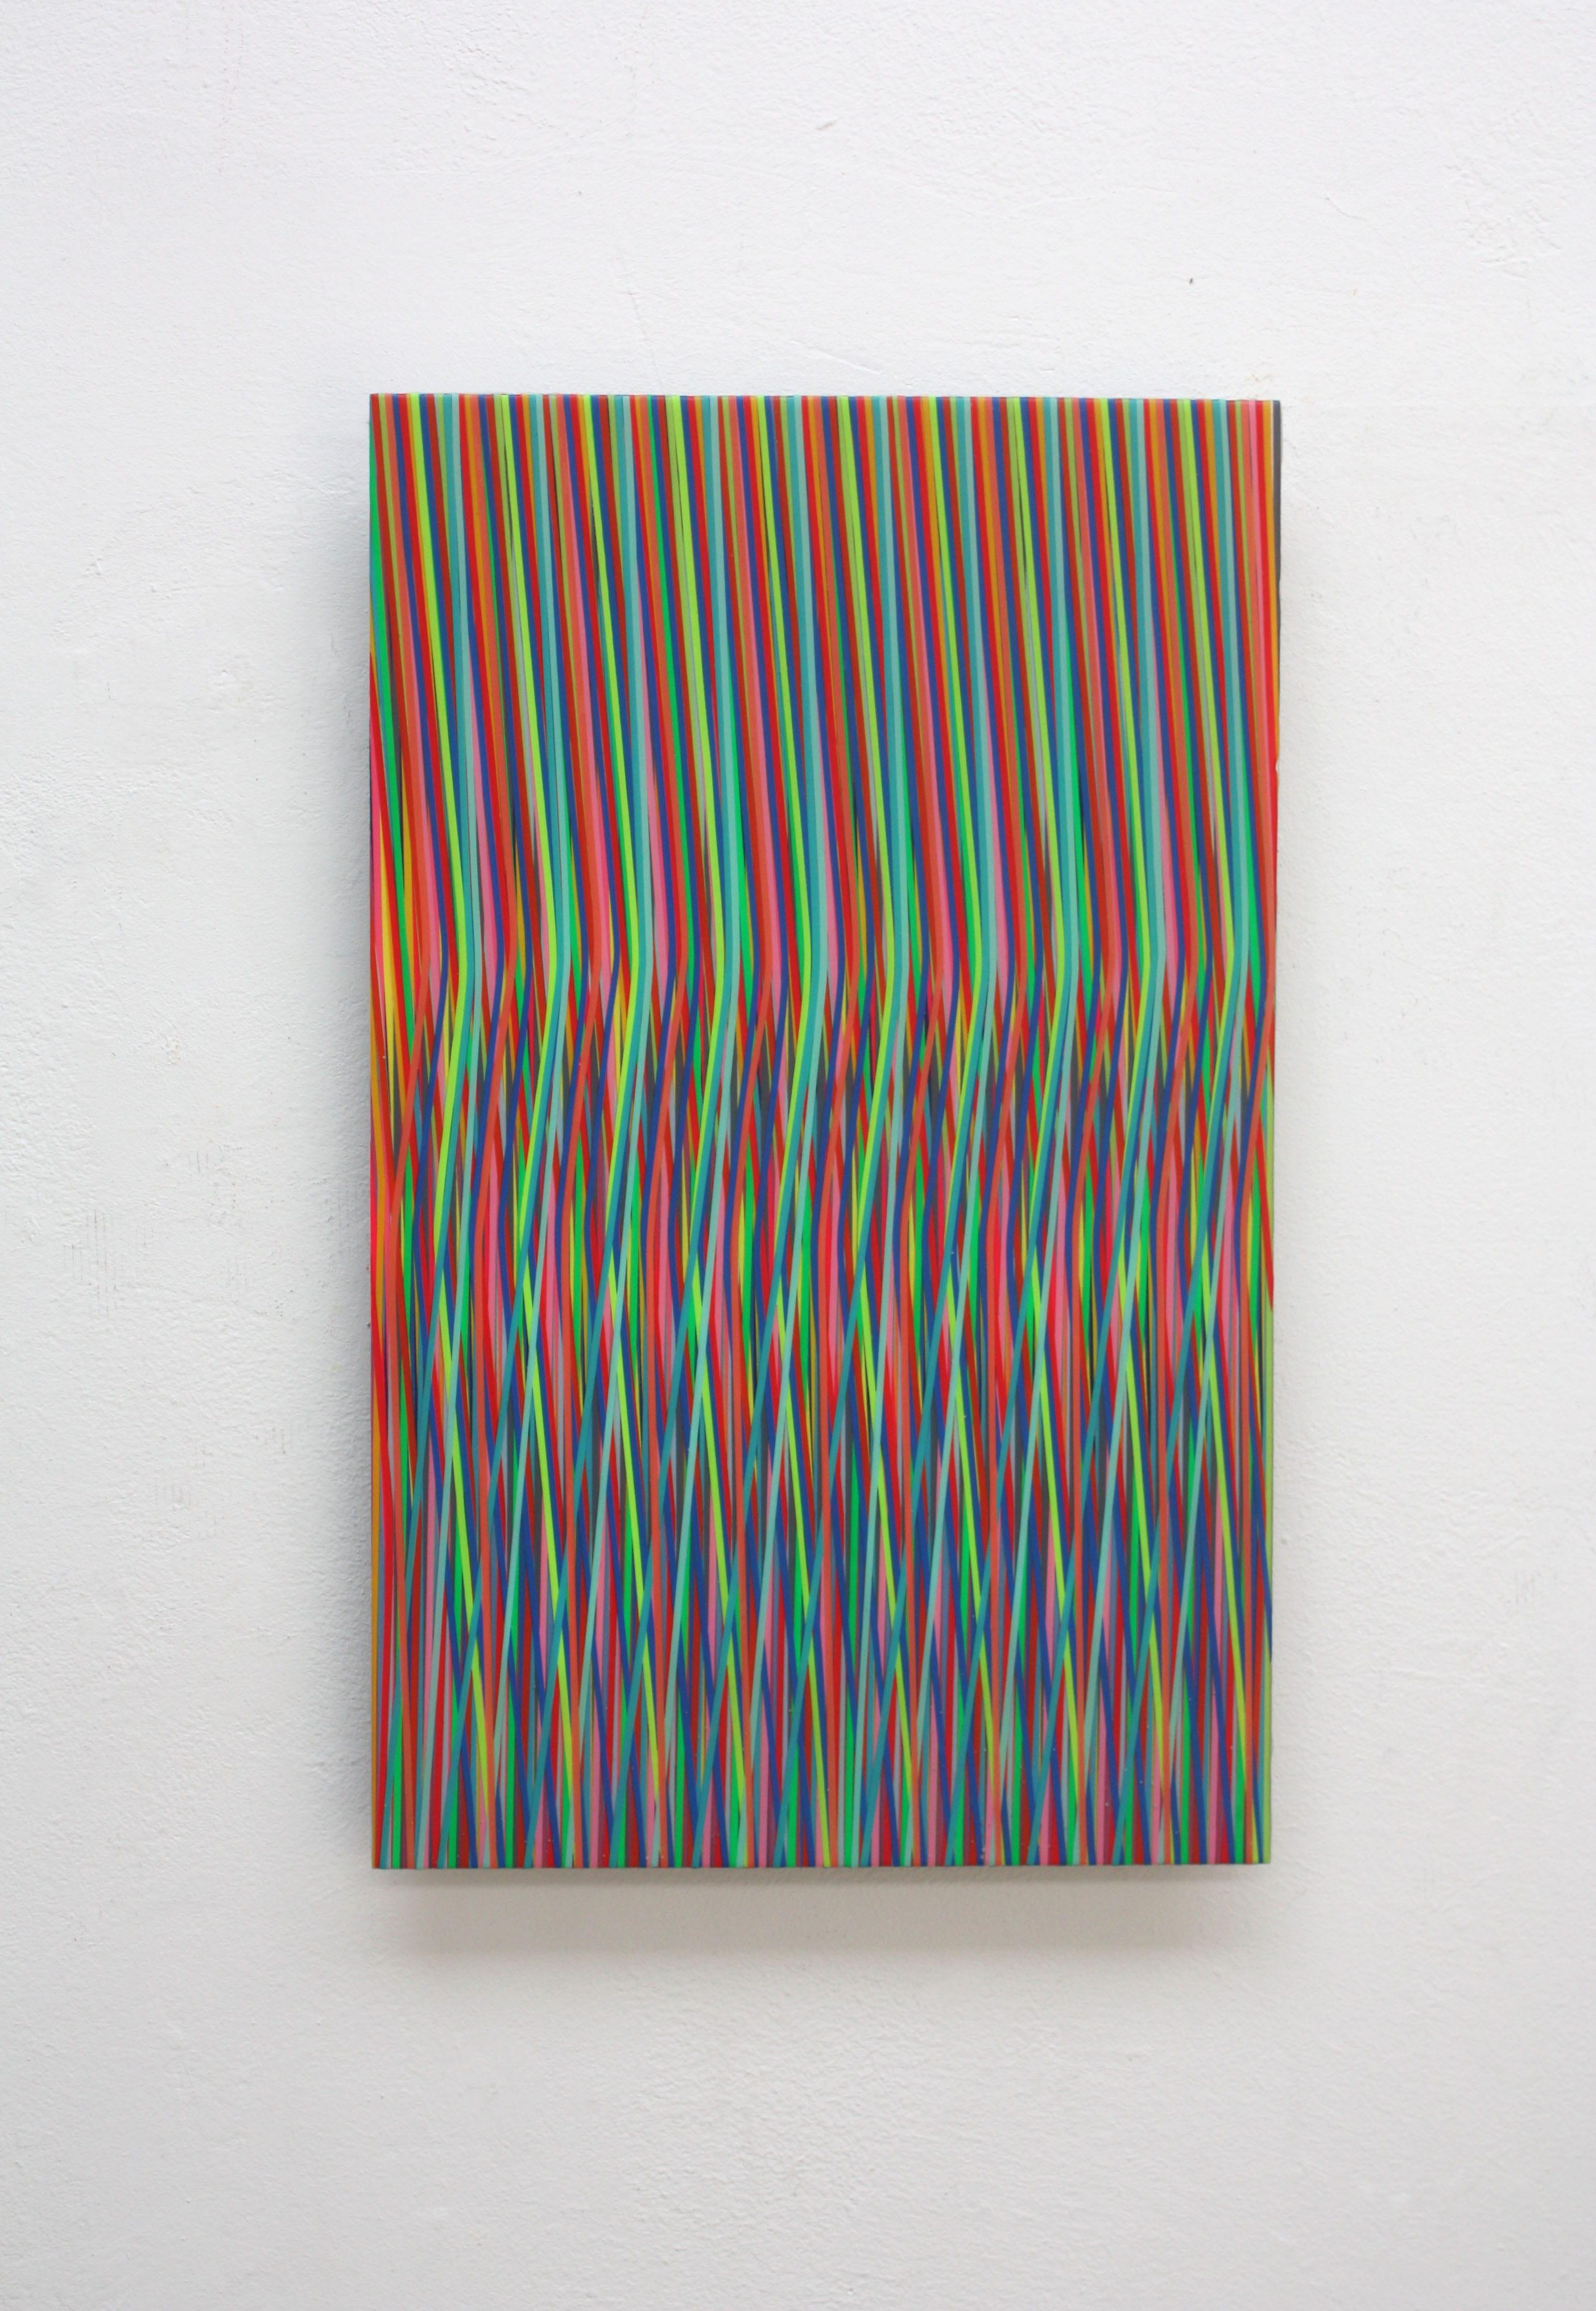 Line 1213-16 by Ahn Hyun-Ju - Abstract painting, minimalism, bright colors